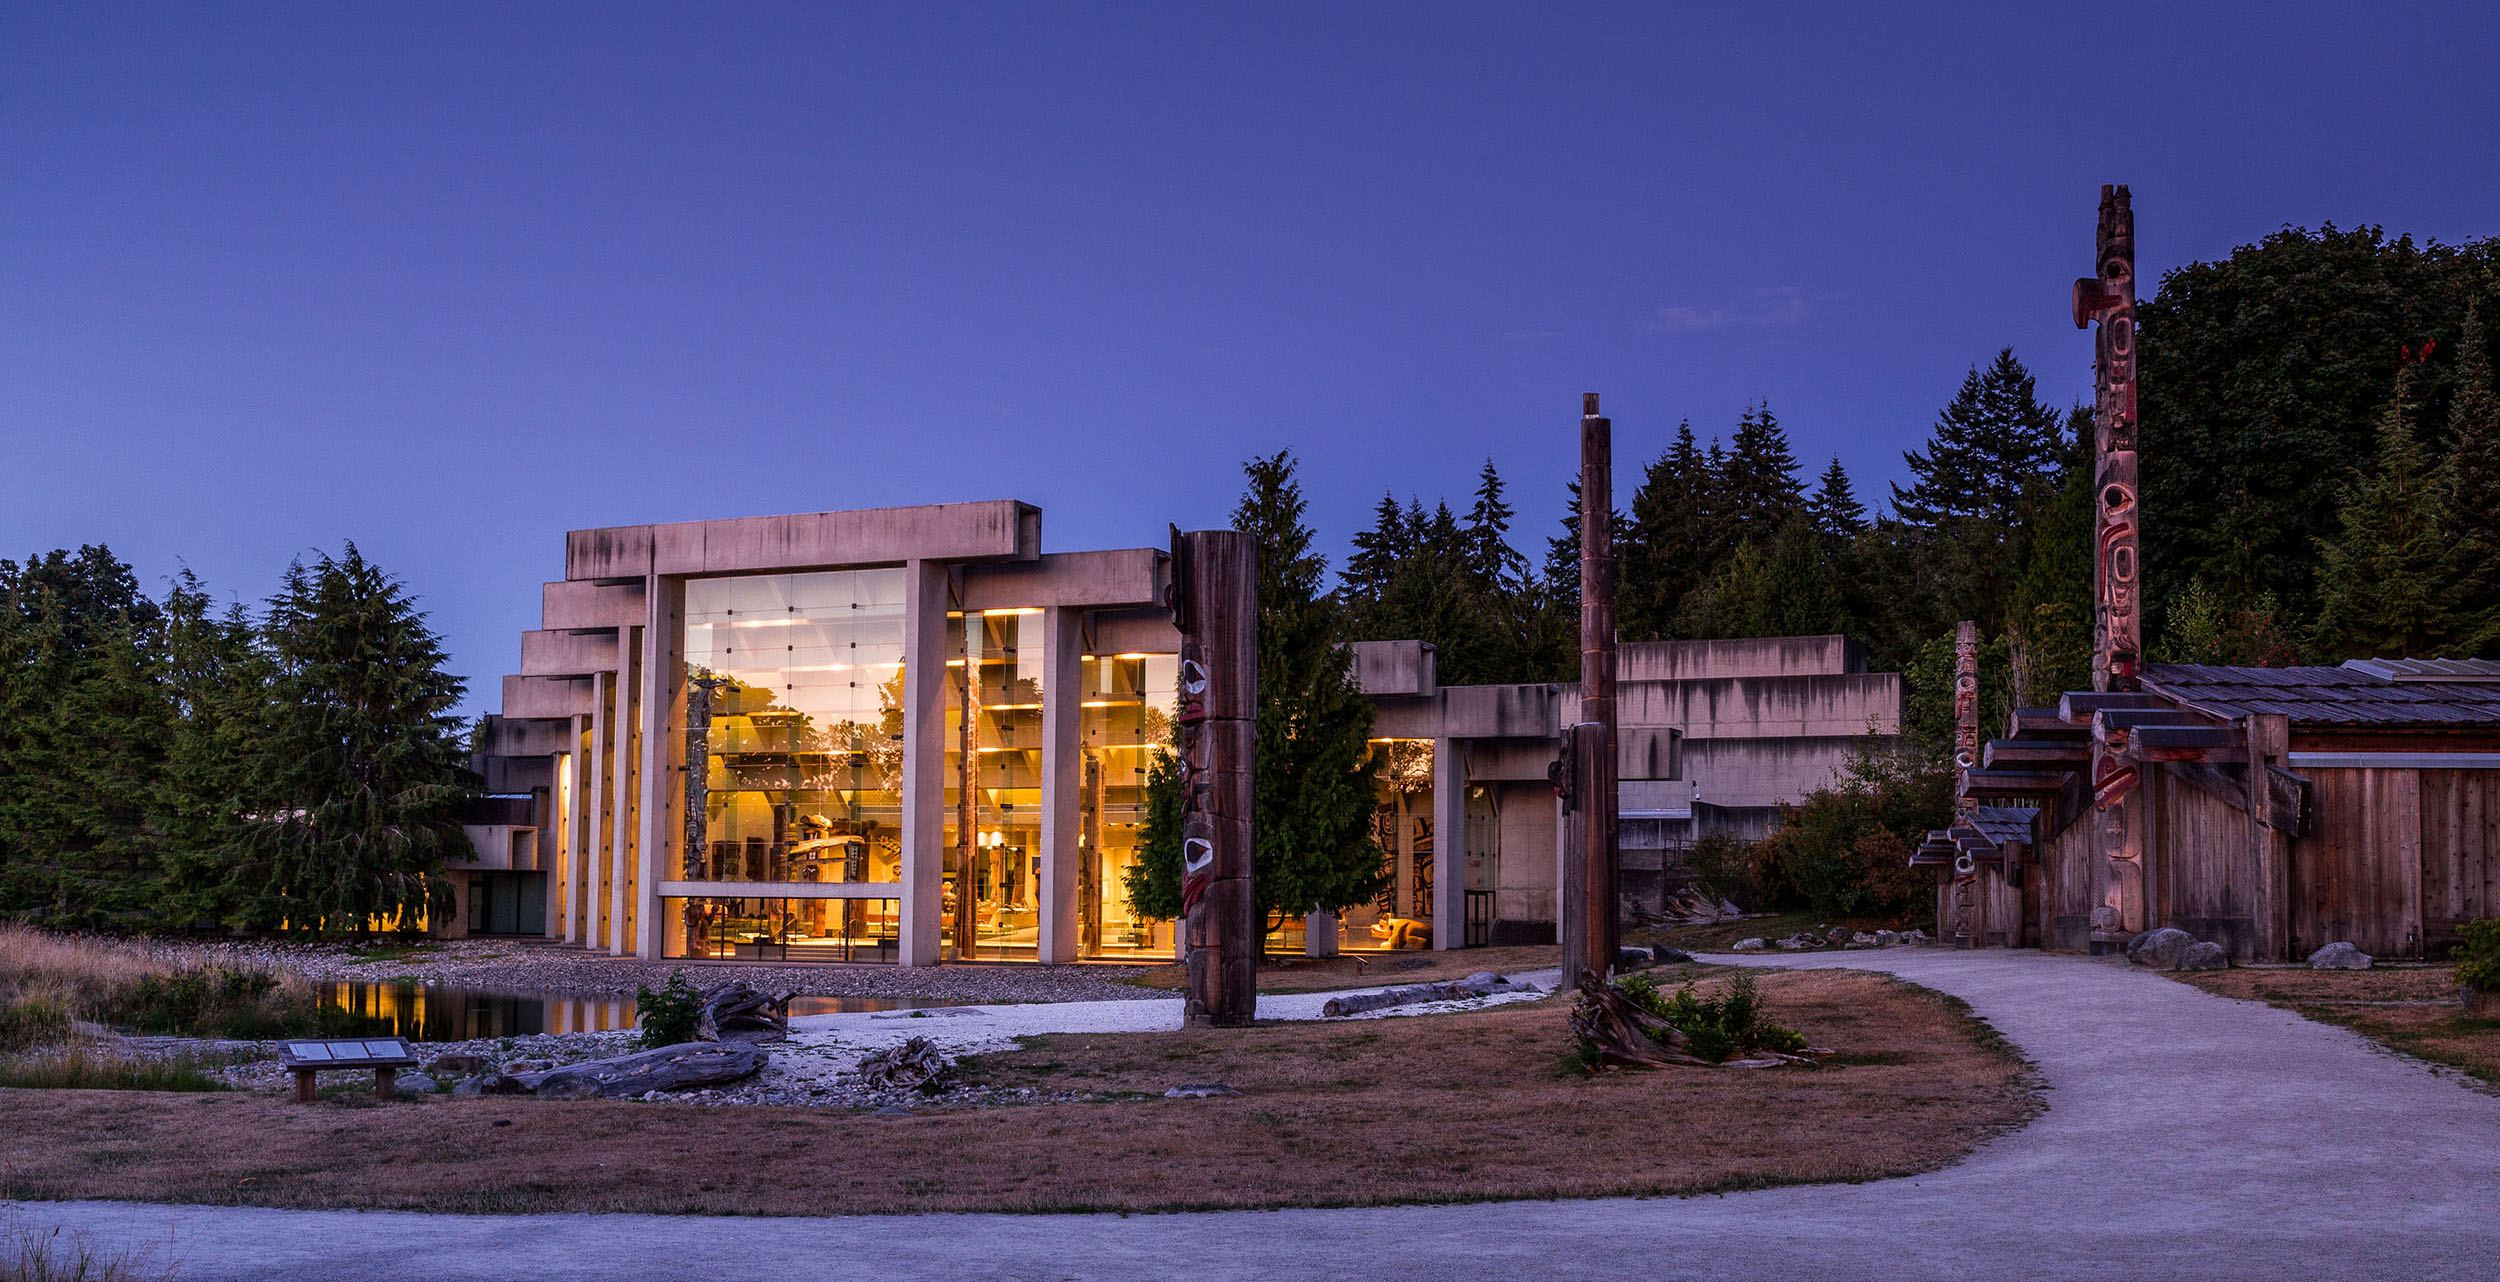 Museum of Anthropology aims to become Vancouver's first urban star park